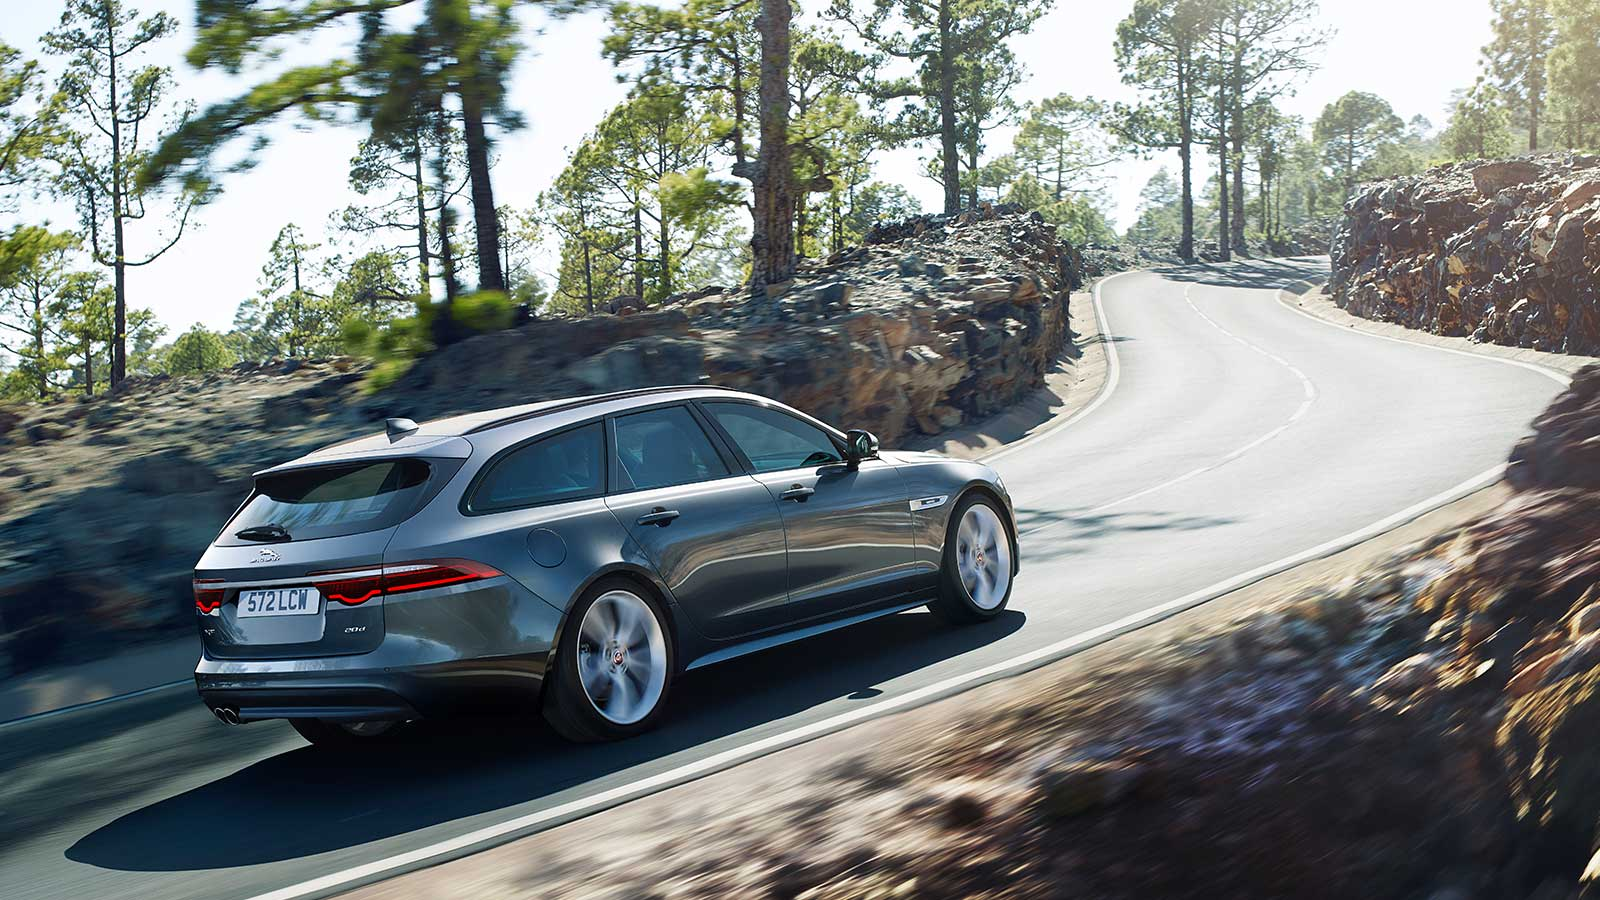 Jaguar XF driving uphill on a mountain road.